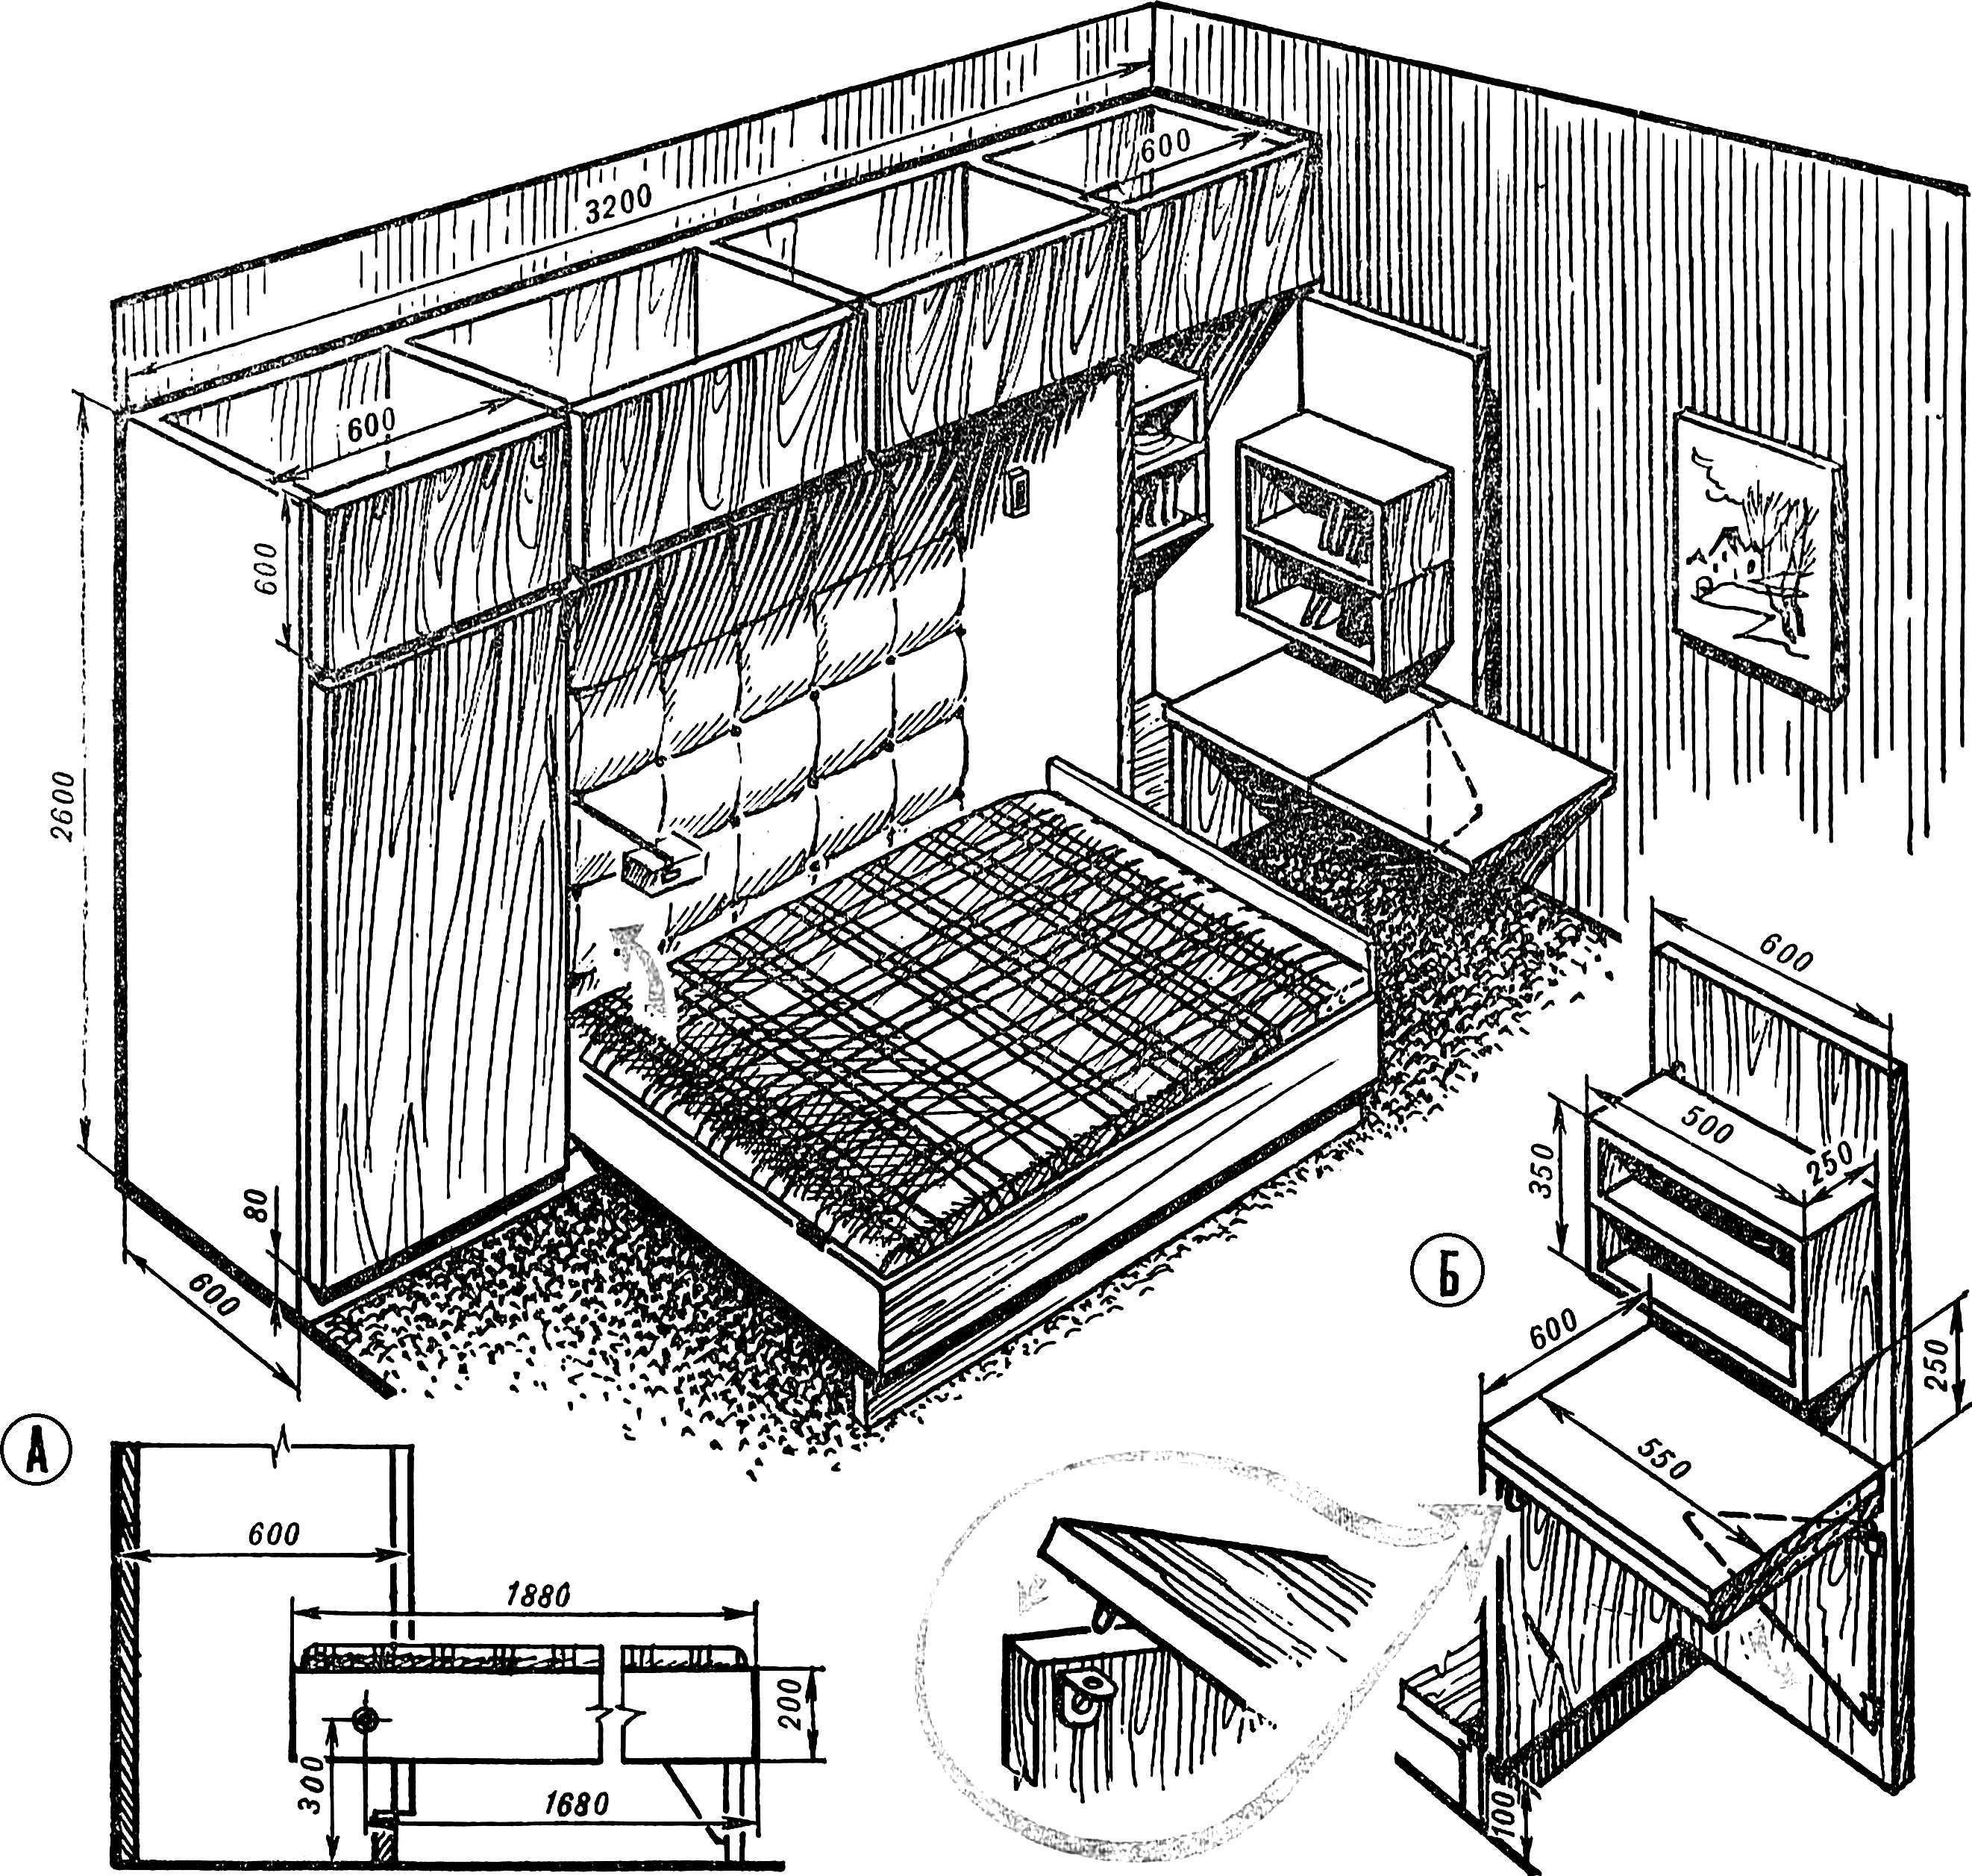 Fig. 4. Solution-bed sections with a longitudinal double bed.